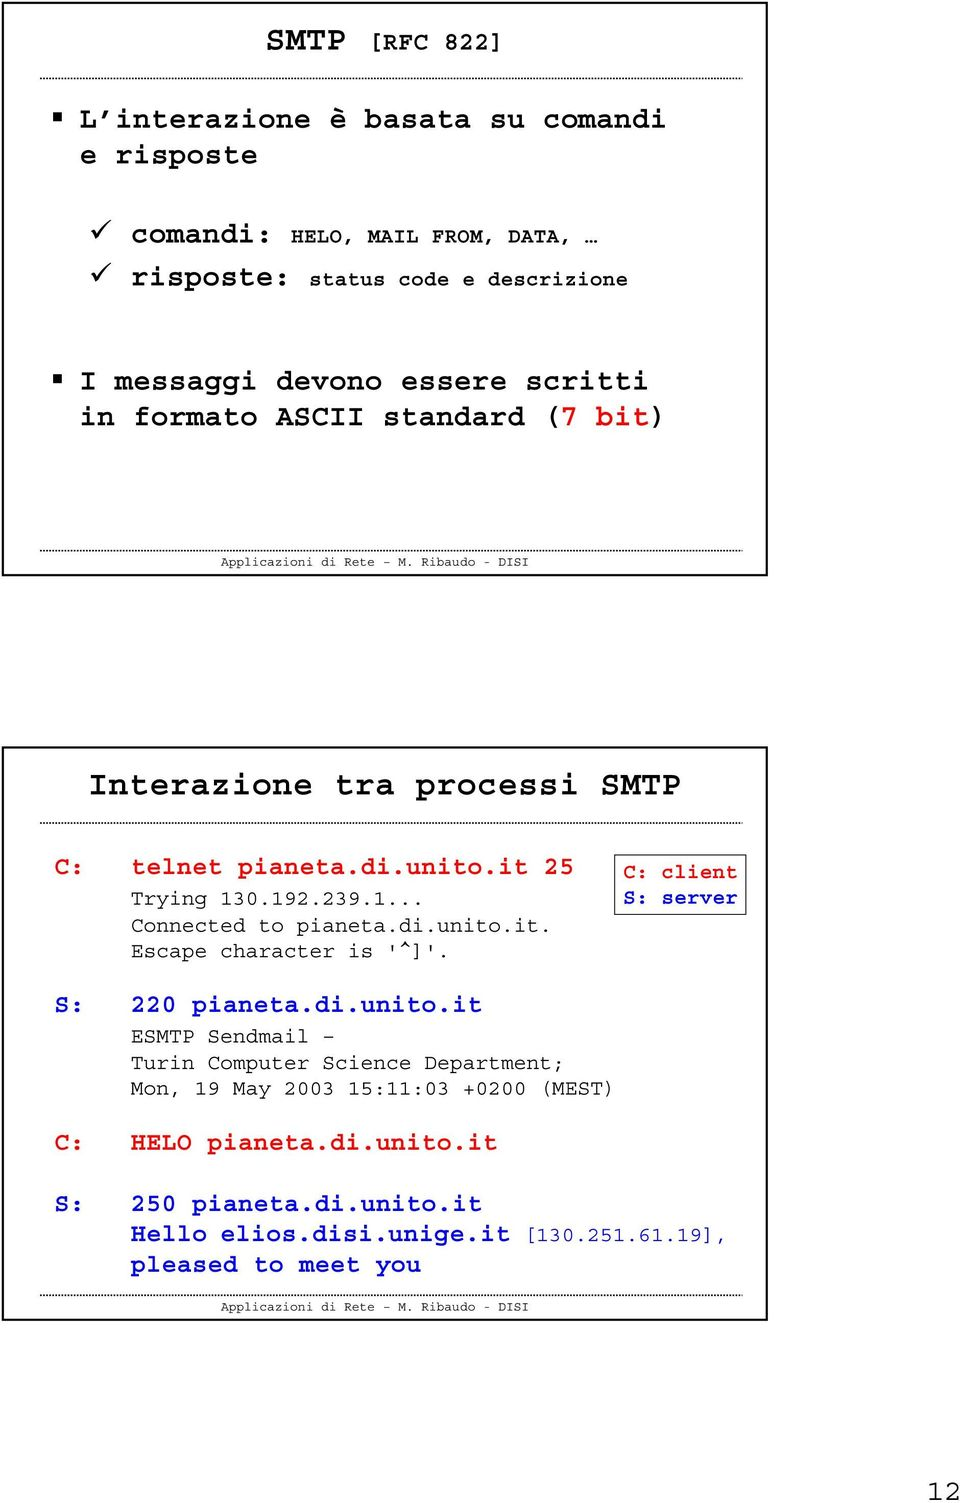 di.unito.it. Escape character is '^]'. C: client S: S: 220 pianeta.di.unito.it ESMTP Sendmail Turin Computer Science Department; Mon, 19 May 2003 15:11:03 +0200 (MEST) C: HELO pianeta.